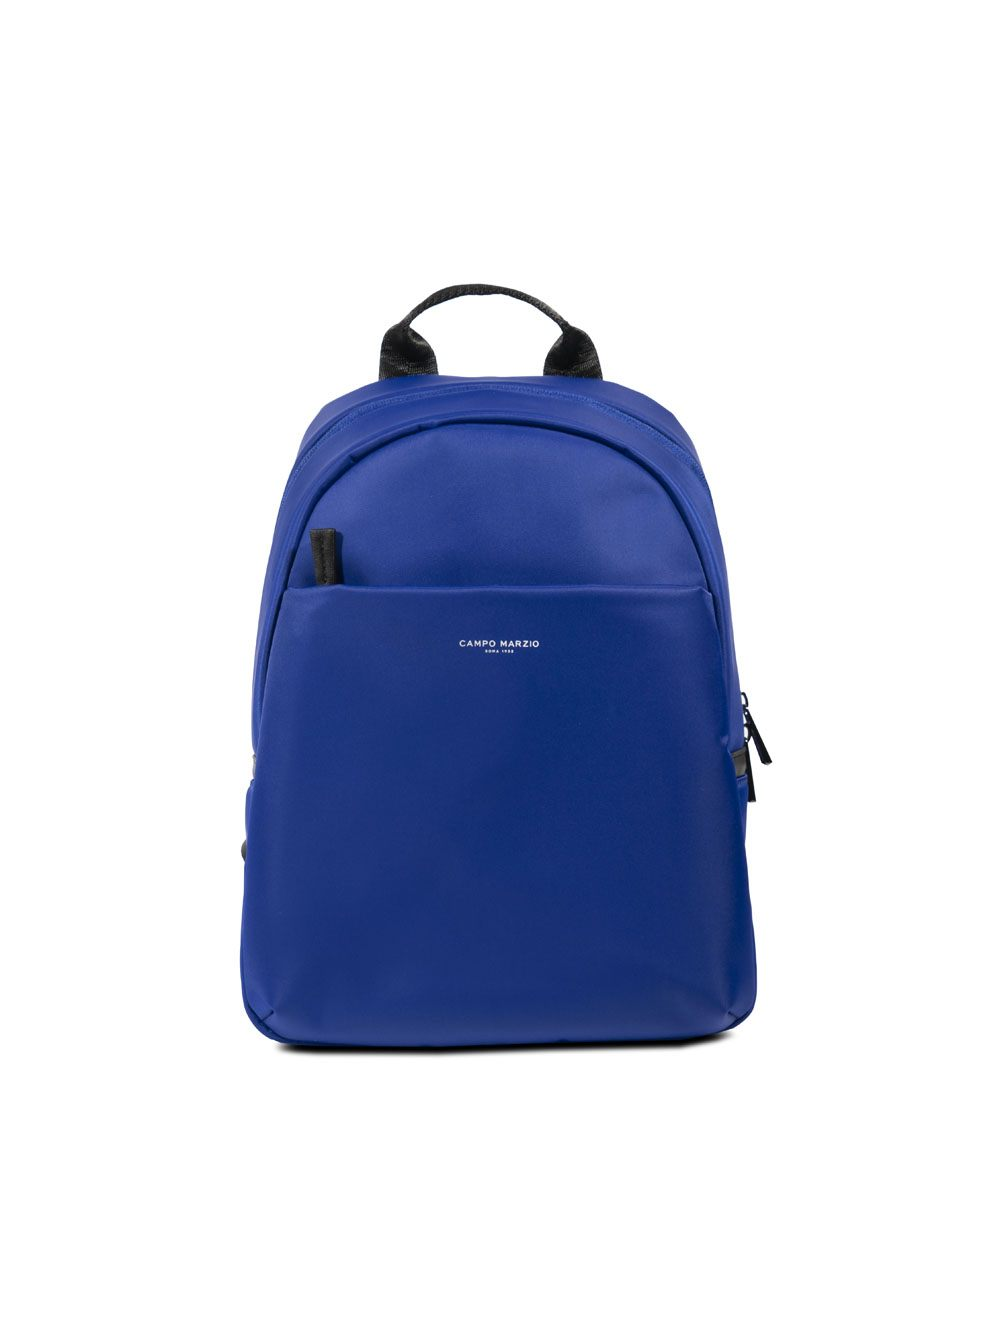 "Urban Backpack 11"" - Blueberry"